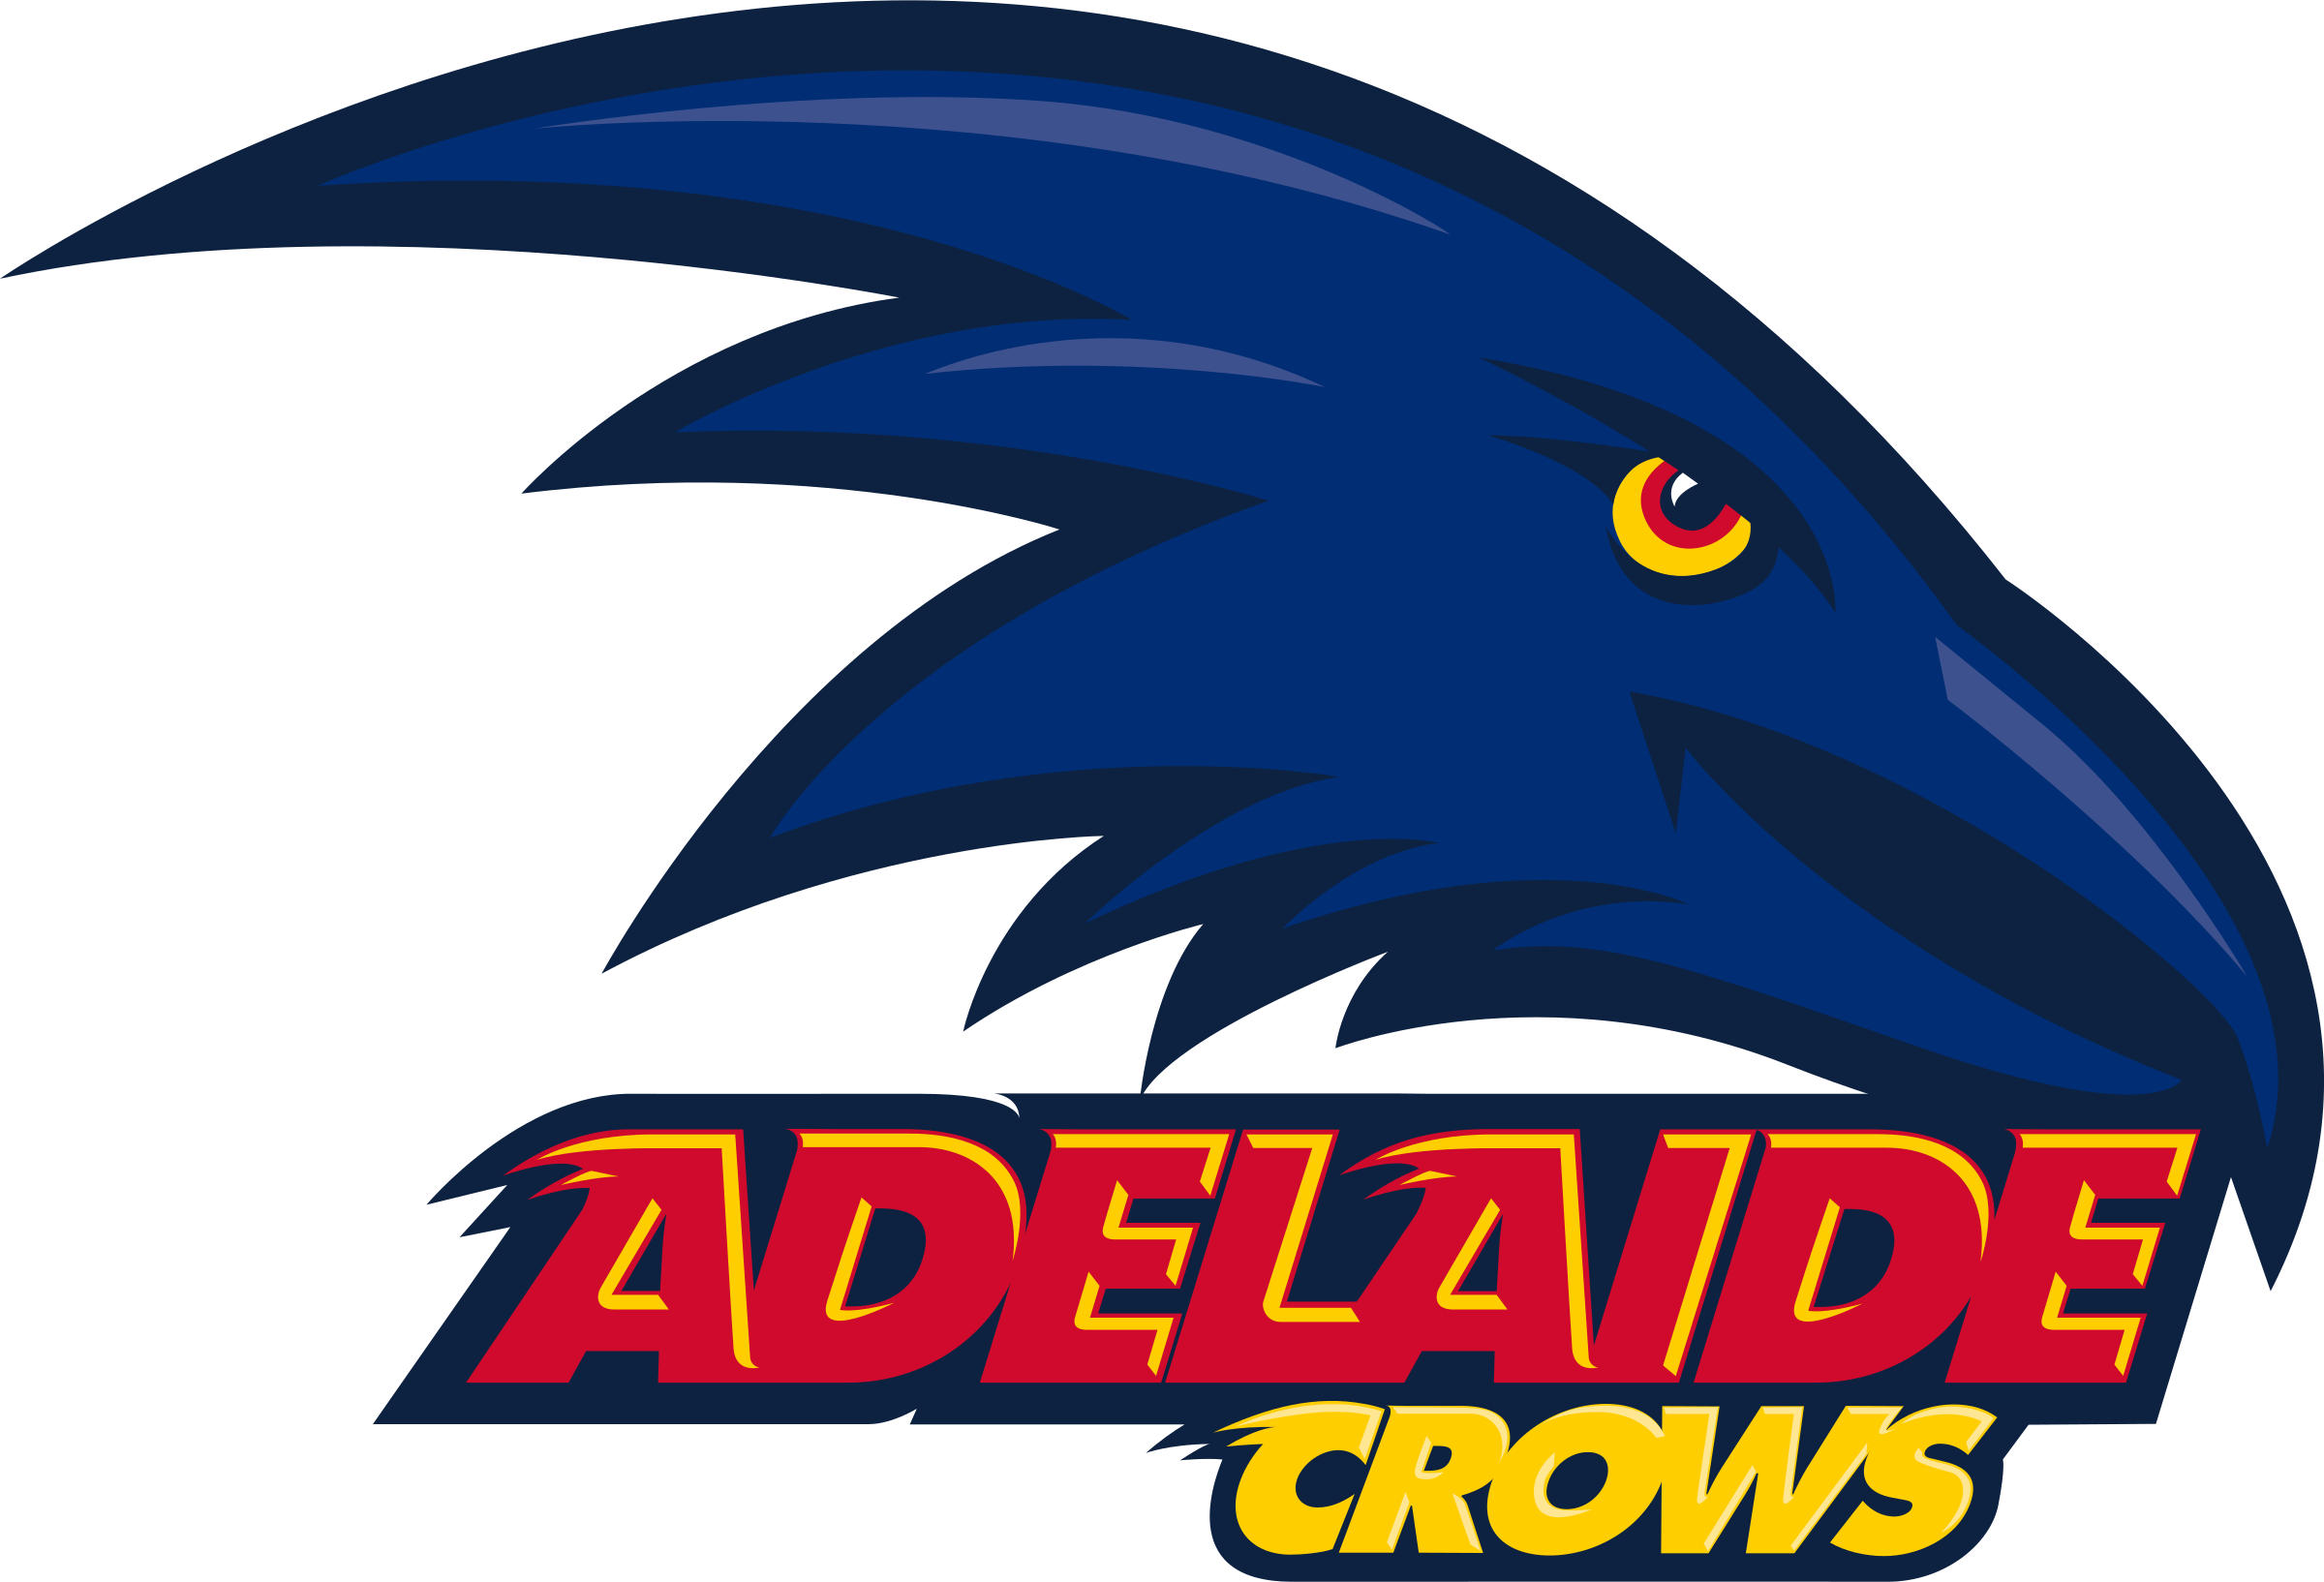 Adelaide crows logo png. Crow clipart svg